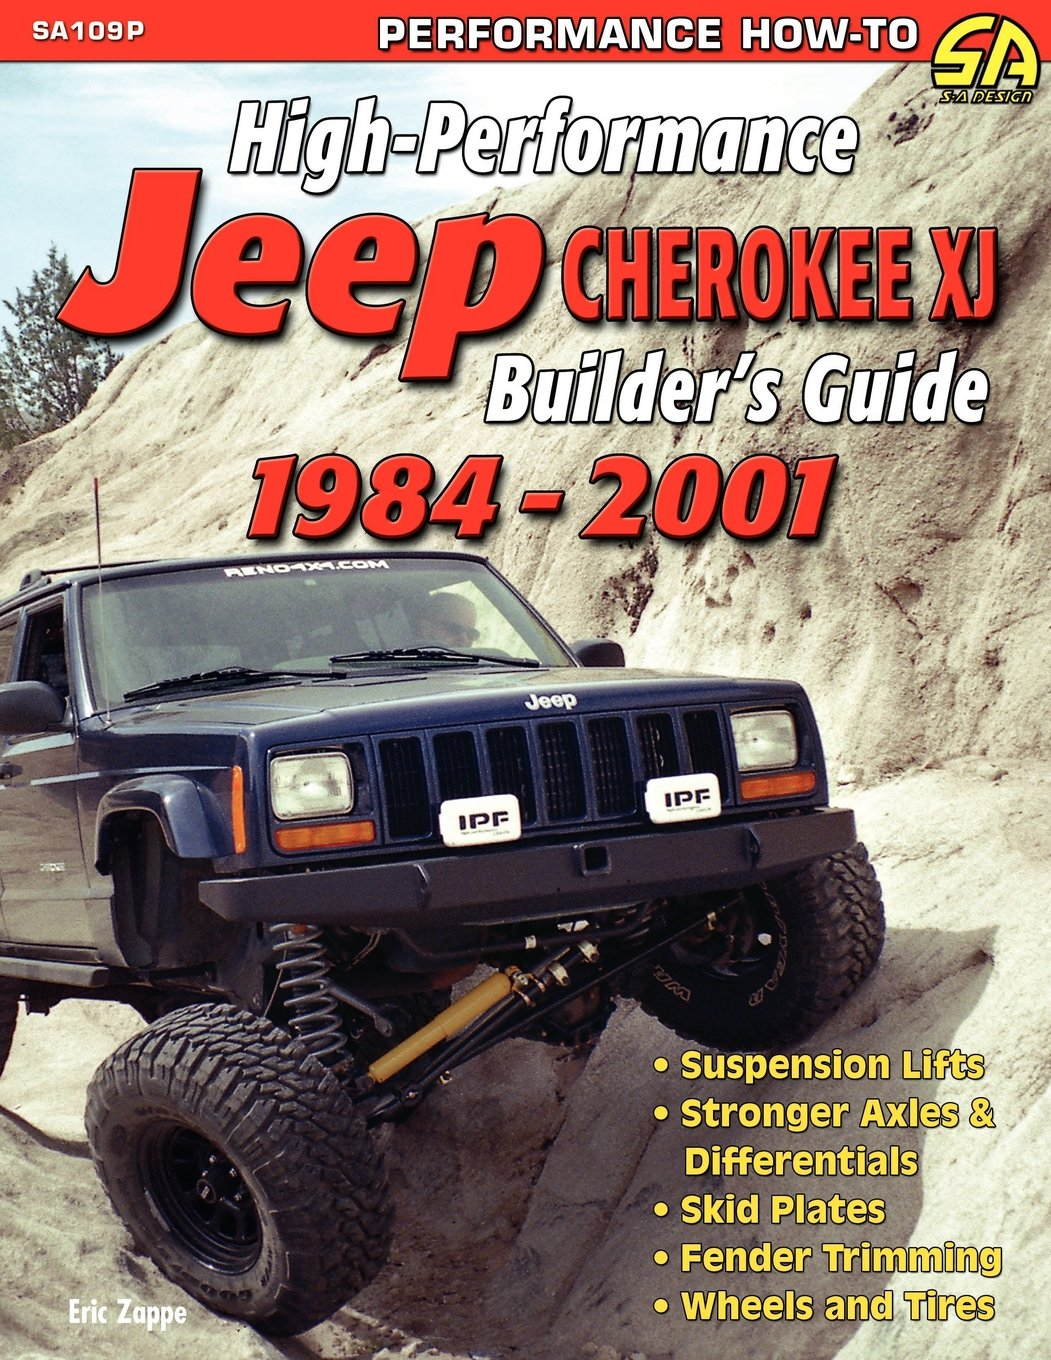 High performance jeep cherokee xj builders guide 1984 2001 eric high performance jeep cherokee xj builders guide 1984 2001 eric zappe 9781613250655 amazon books fandeluxe Choice Image